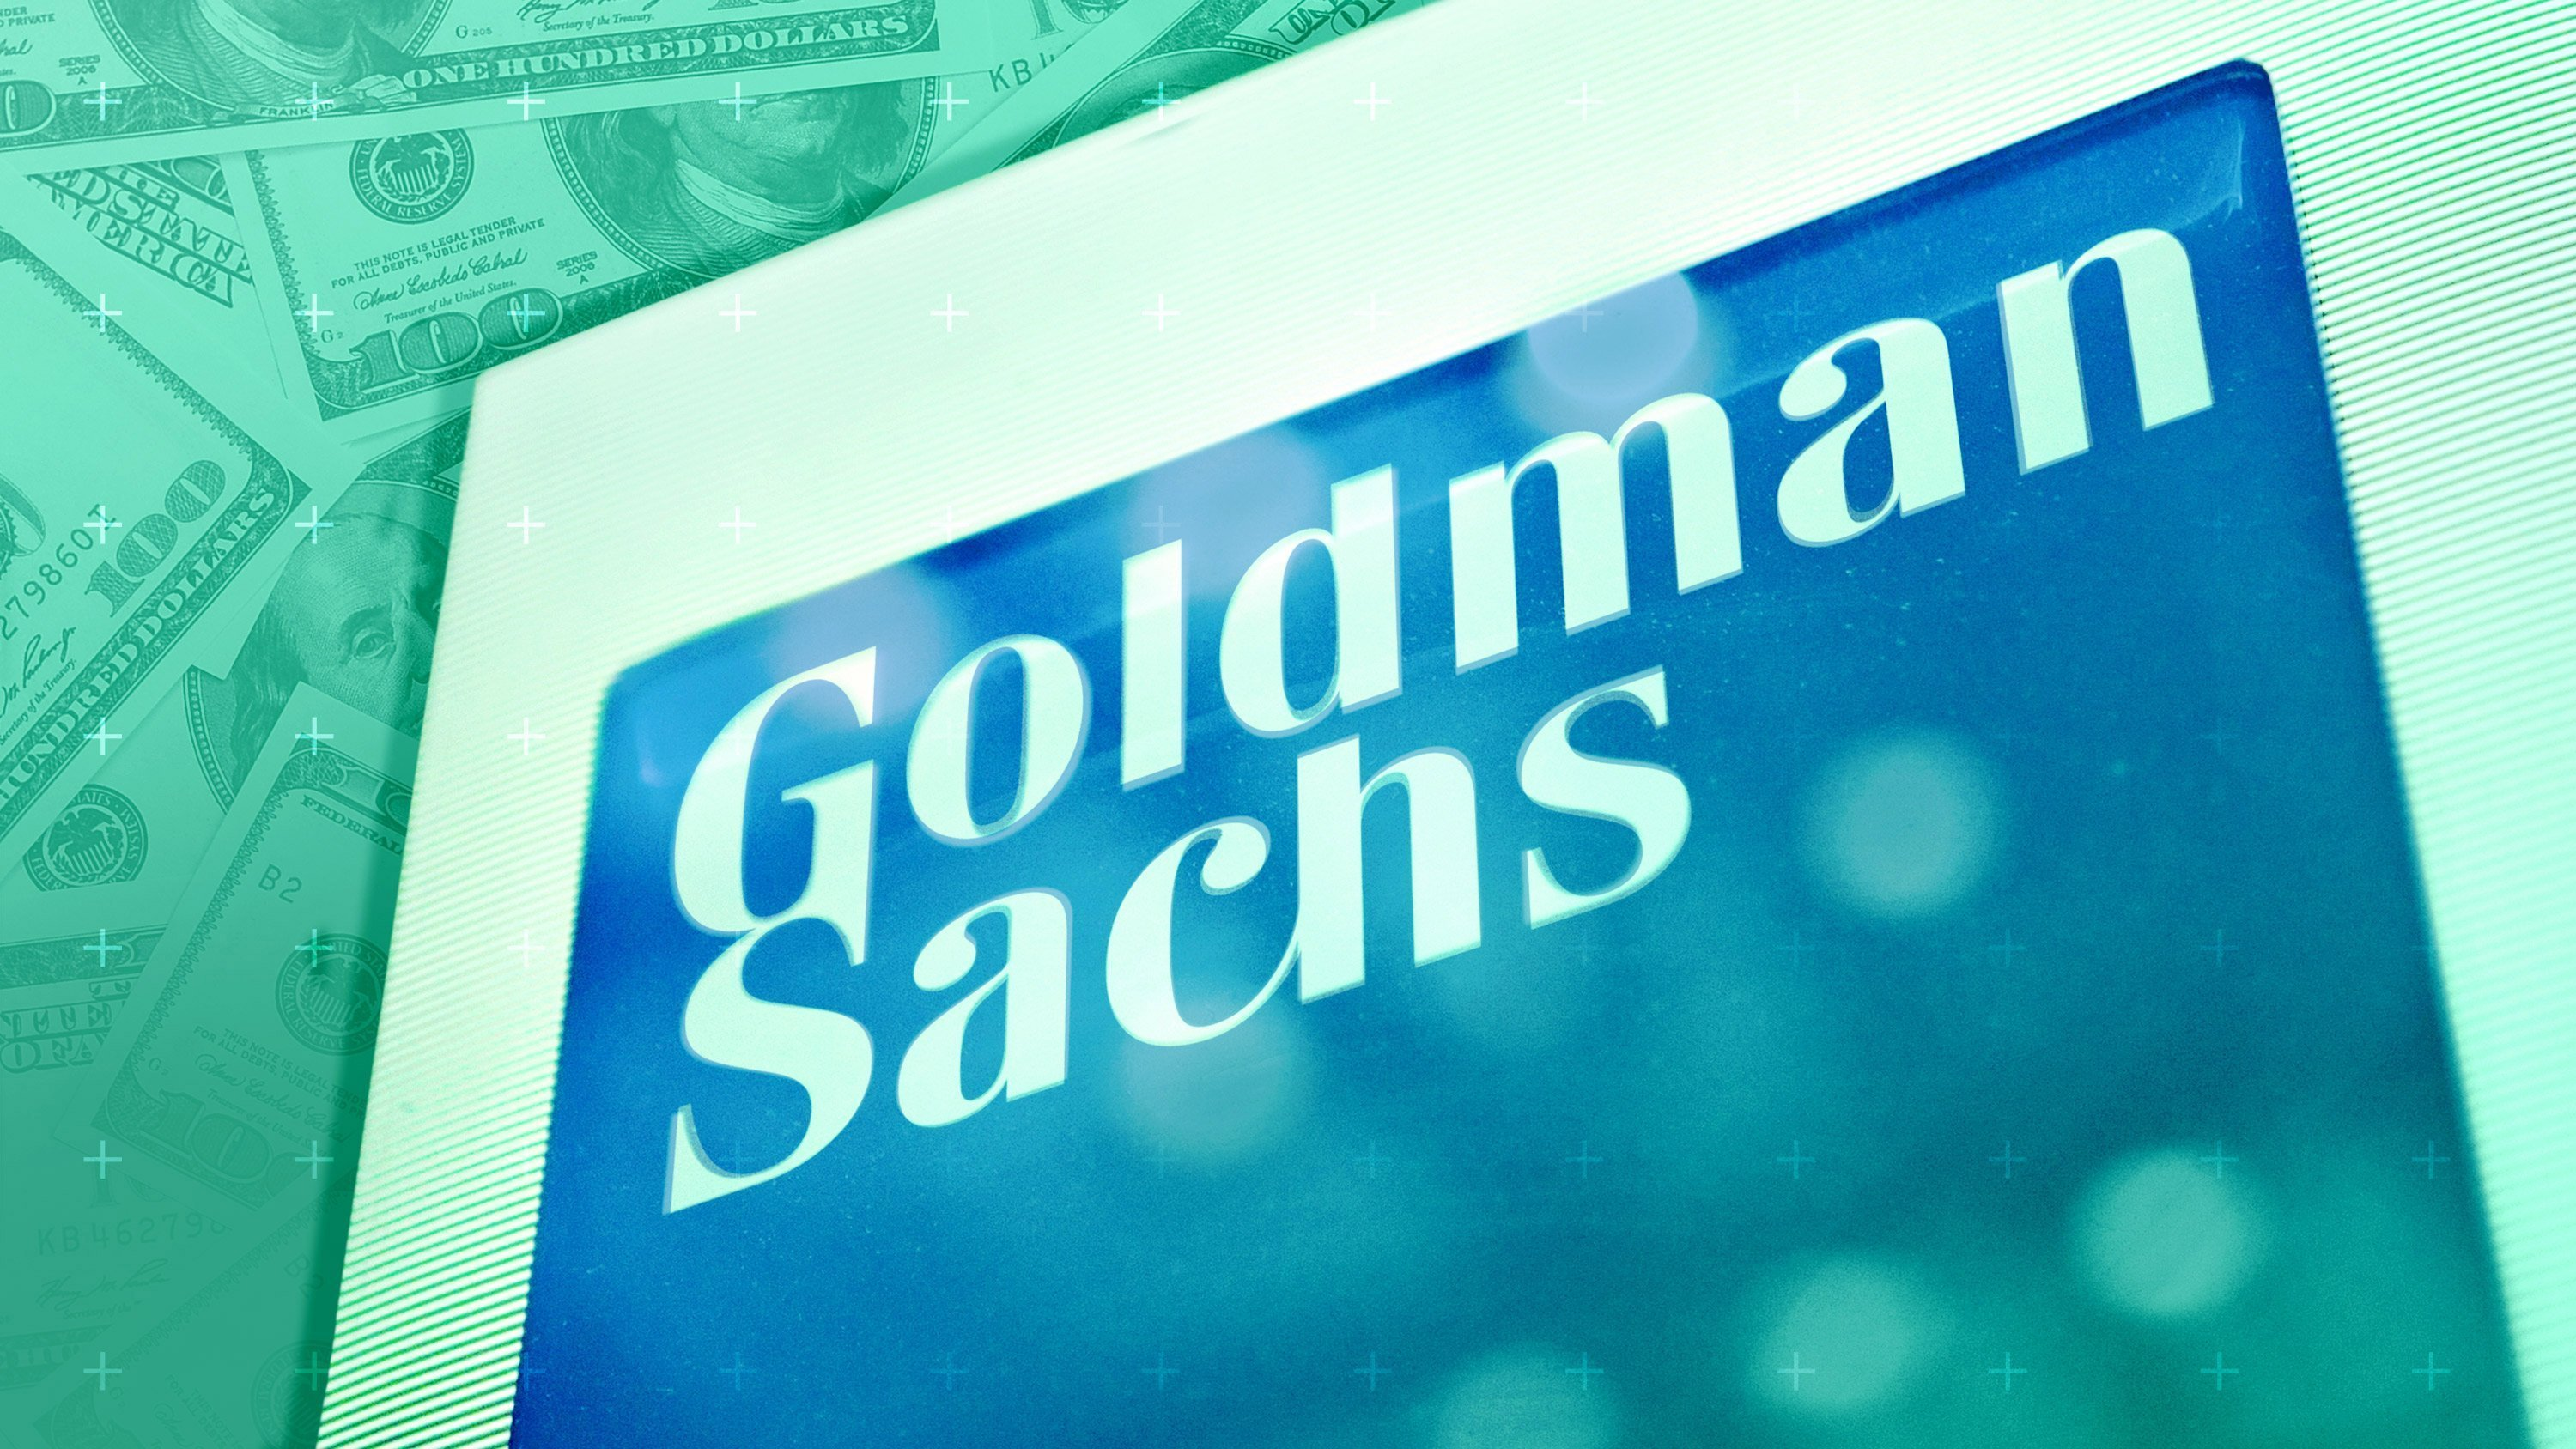 Goldman Sachs reported a $2.8 billion profit for the first quarter Tuesday topping forecasts. And workers at the investment bank were rewarded handsomely. Compensation expenses a number often referred to as the bonus pool even though it includes